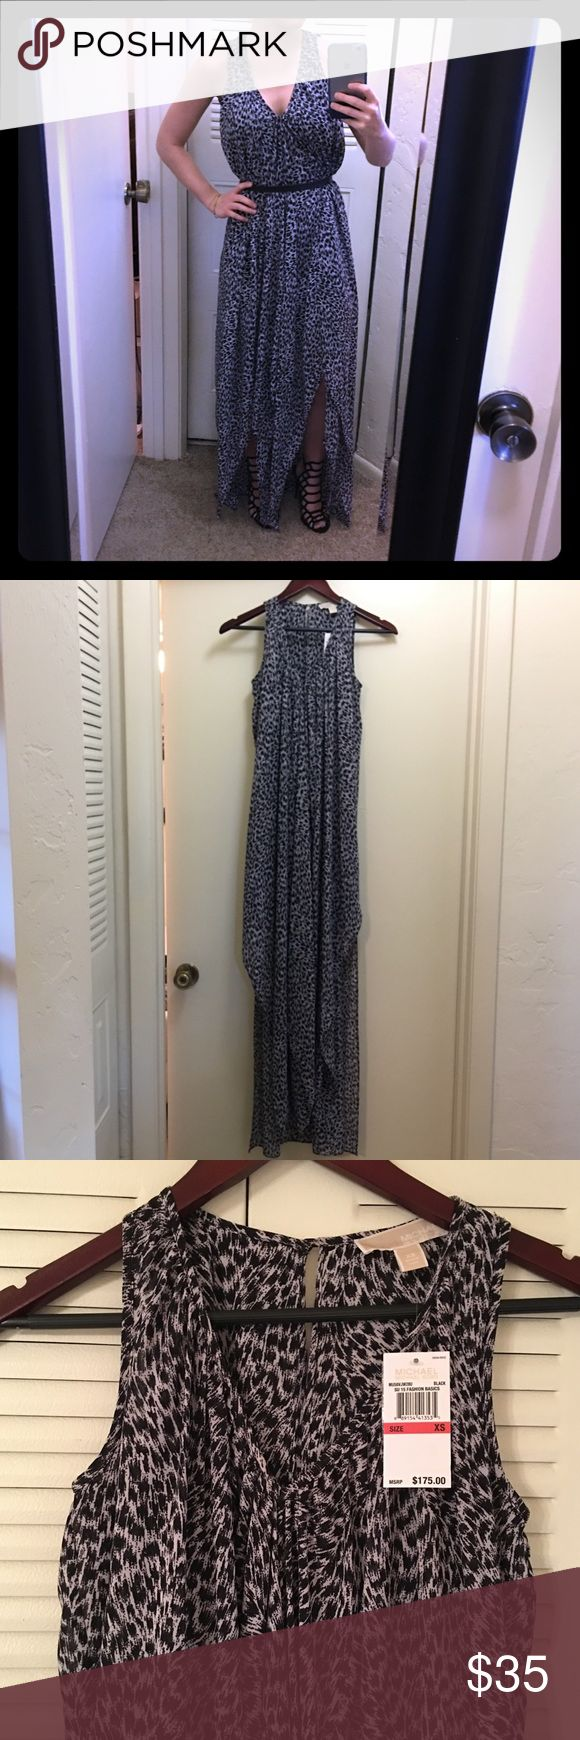 NWT Michael Kors Leopard maxi dress Looks great belted (belt not included). V neck leopard dress. Size XS. Approx 58 inches in length. Michael Kors Dresses Maxi